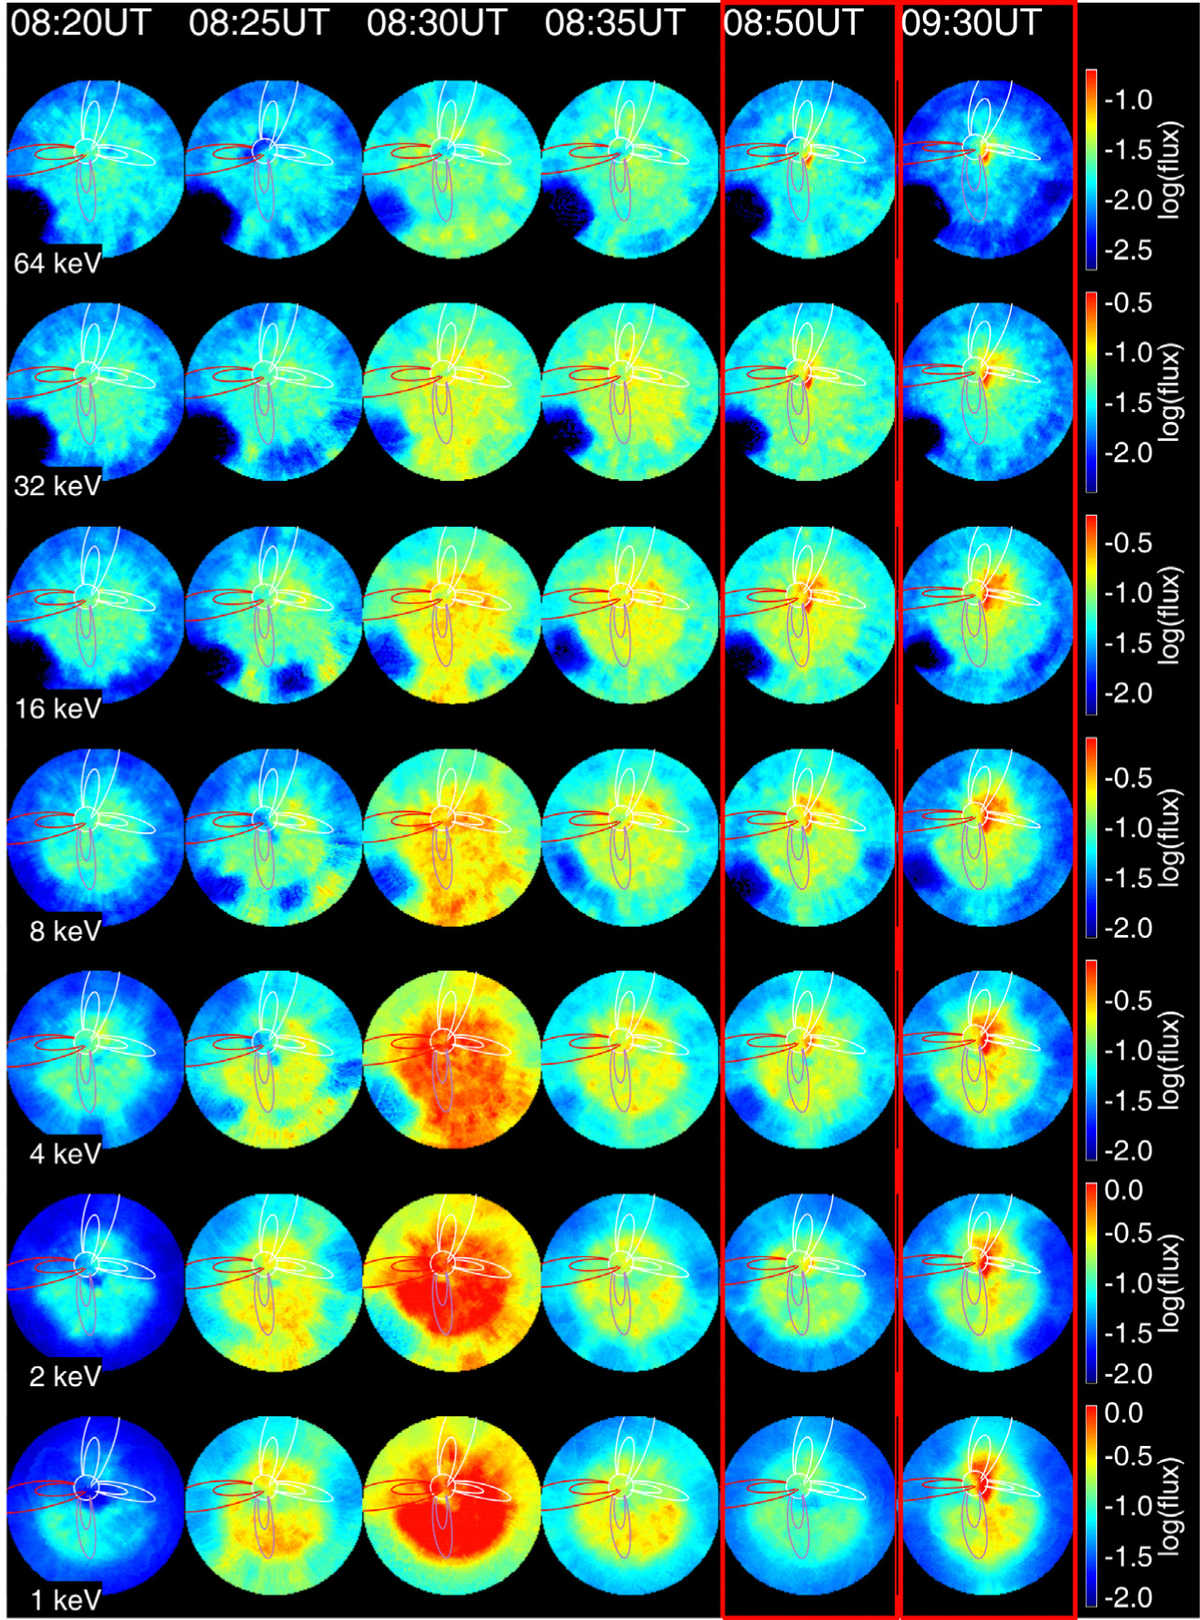 These energetic neutral atom (ENA) panels show IBEX observations before (left) and after (right) the solar wind impacted the Earth's magnetosphere on April 5, 2010